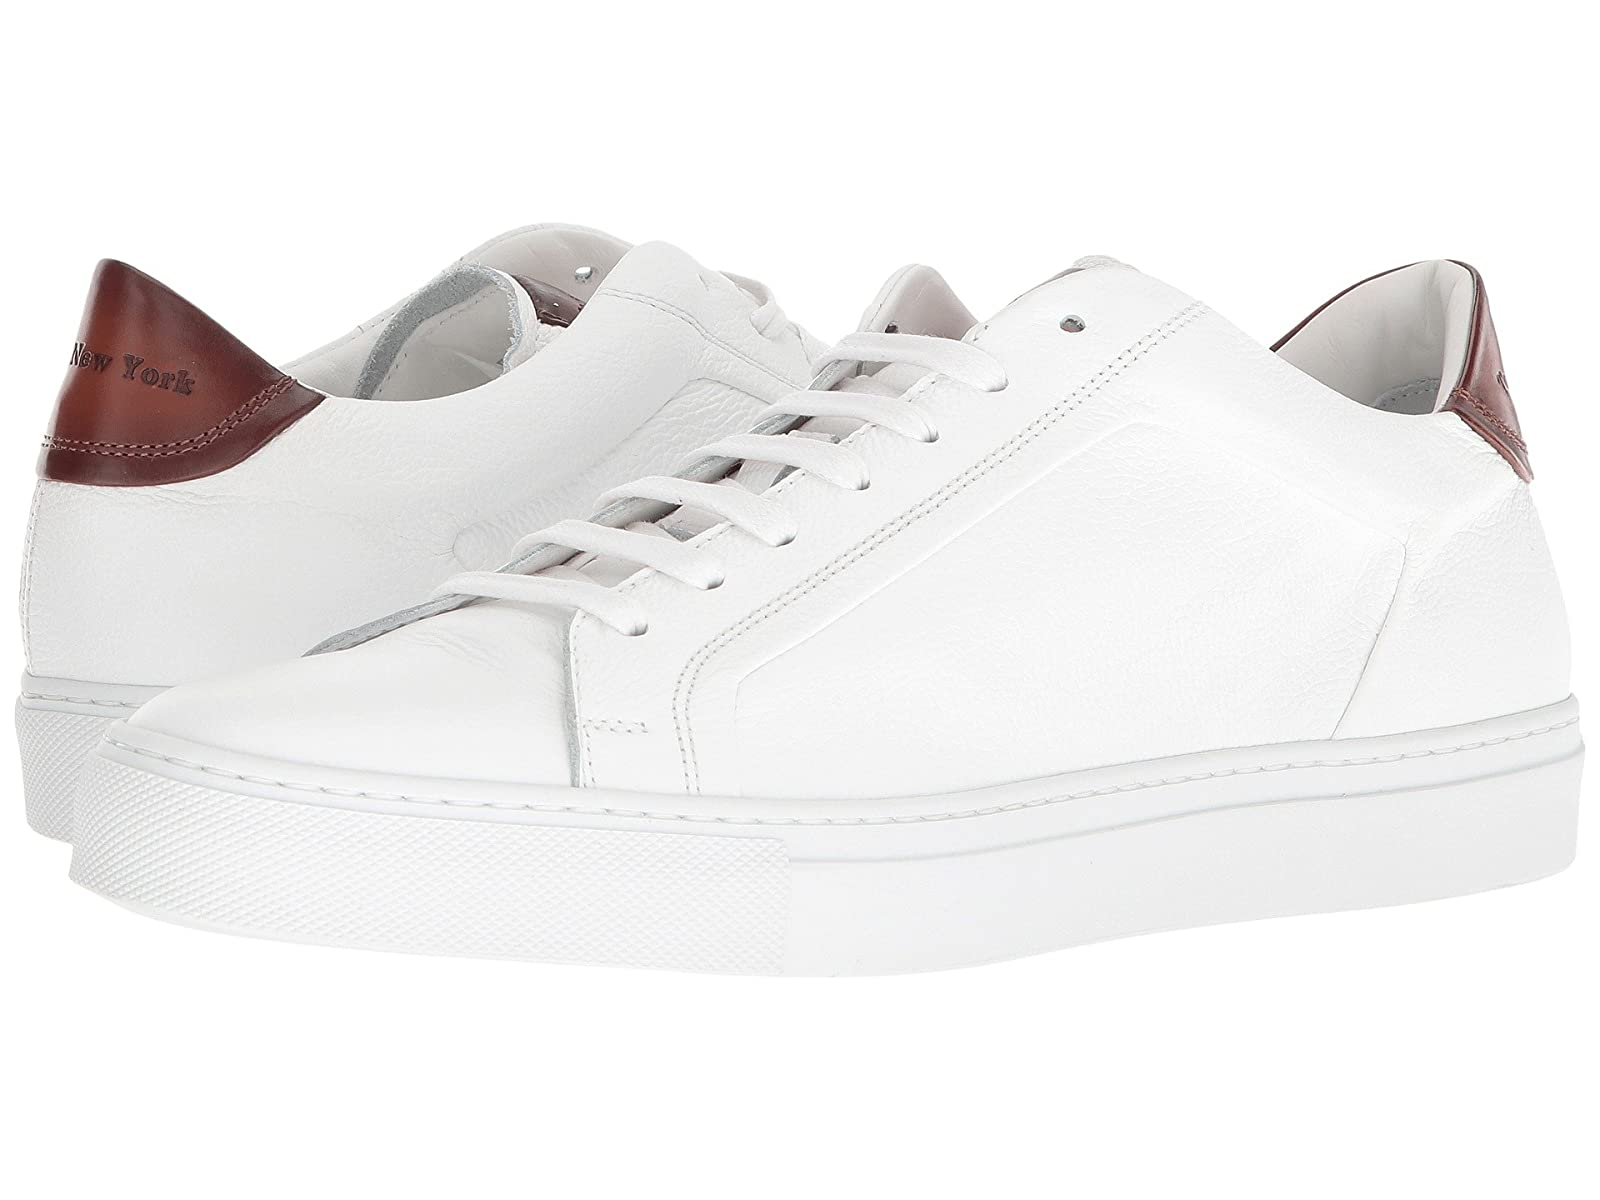 To Boot New York CarlinAtmospheric grades have affordable shoes